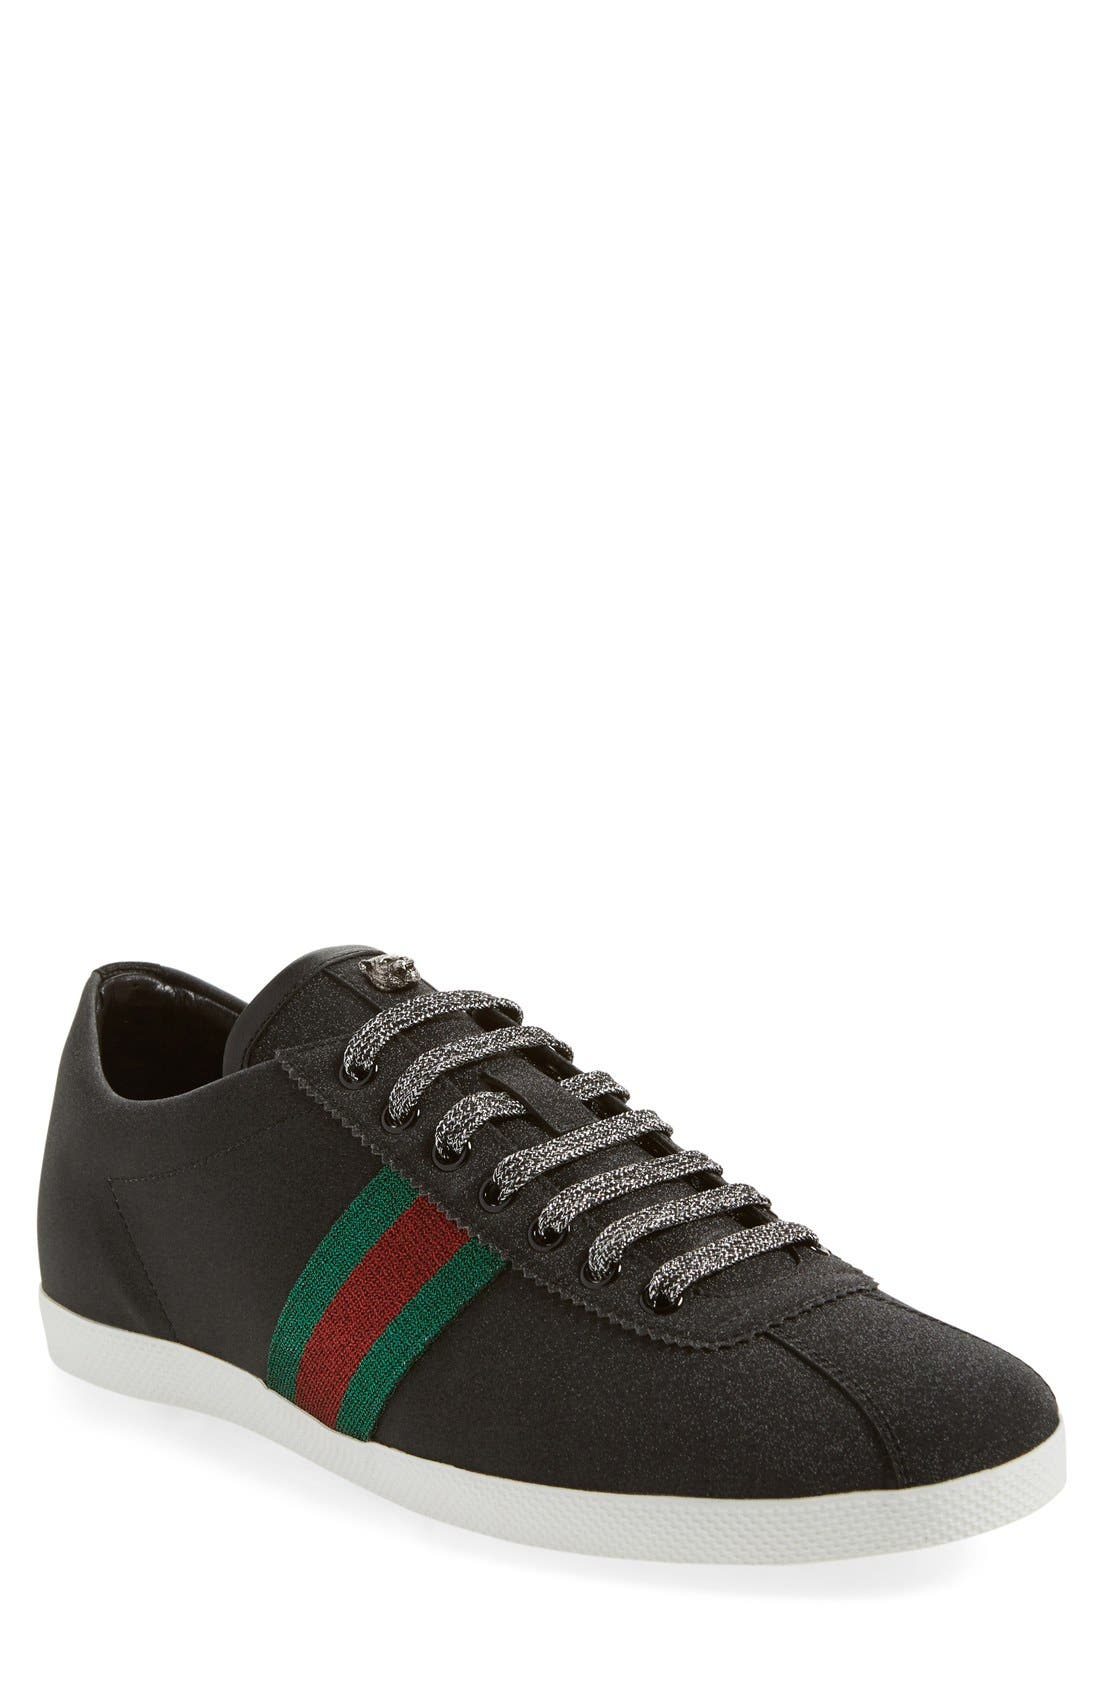 Bambi Lace-Up Sneaker,                         Main,                         color, 009